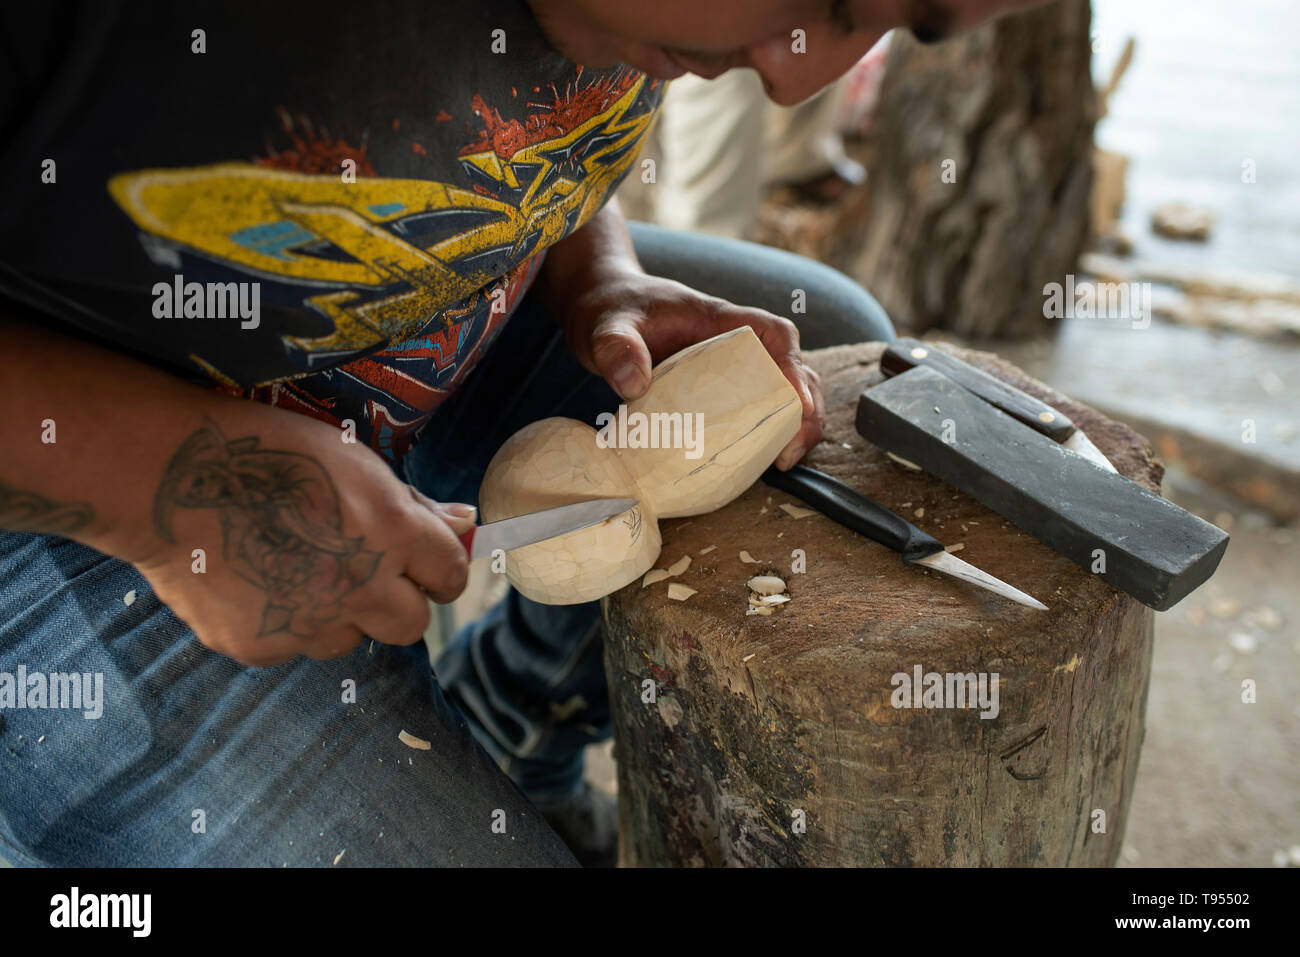 Mexican man carves native wood into alebrijes (surreal dream-like wooden sculptures). San Martín Tilcajete, Oaxaca, Mexico. Apr 2019 - Stock Image